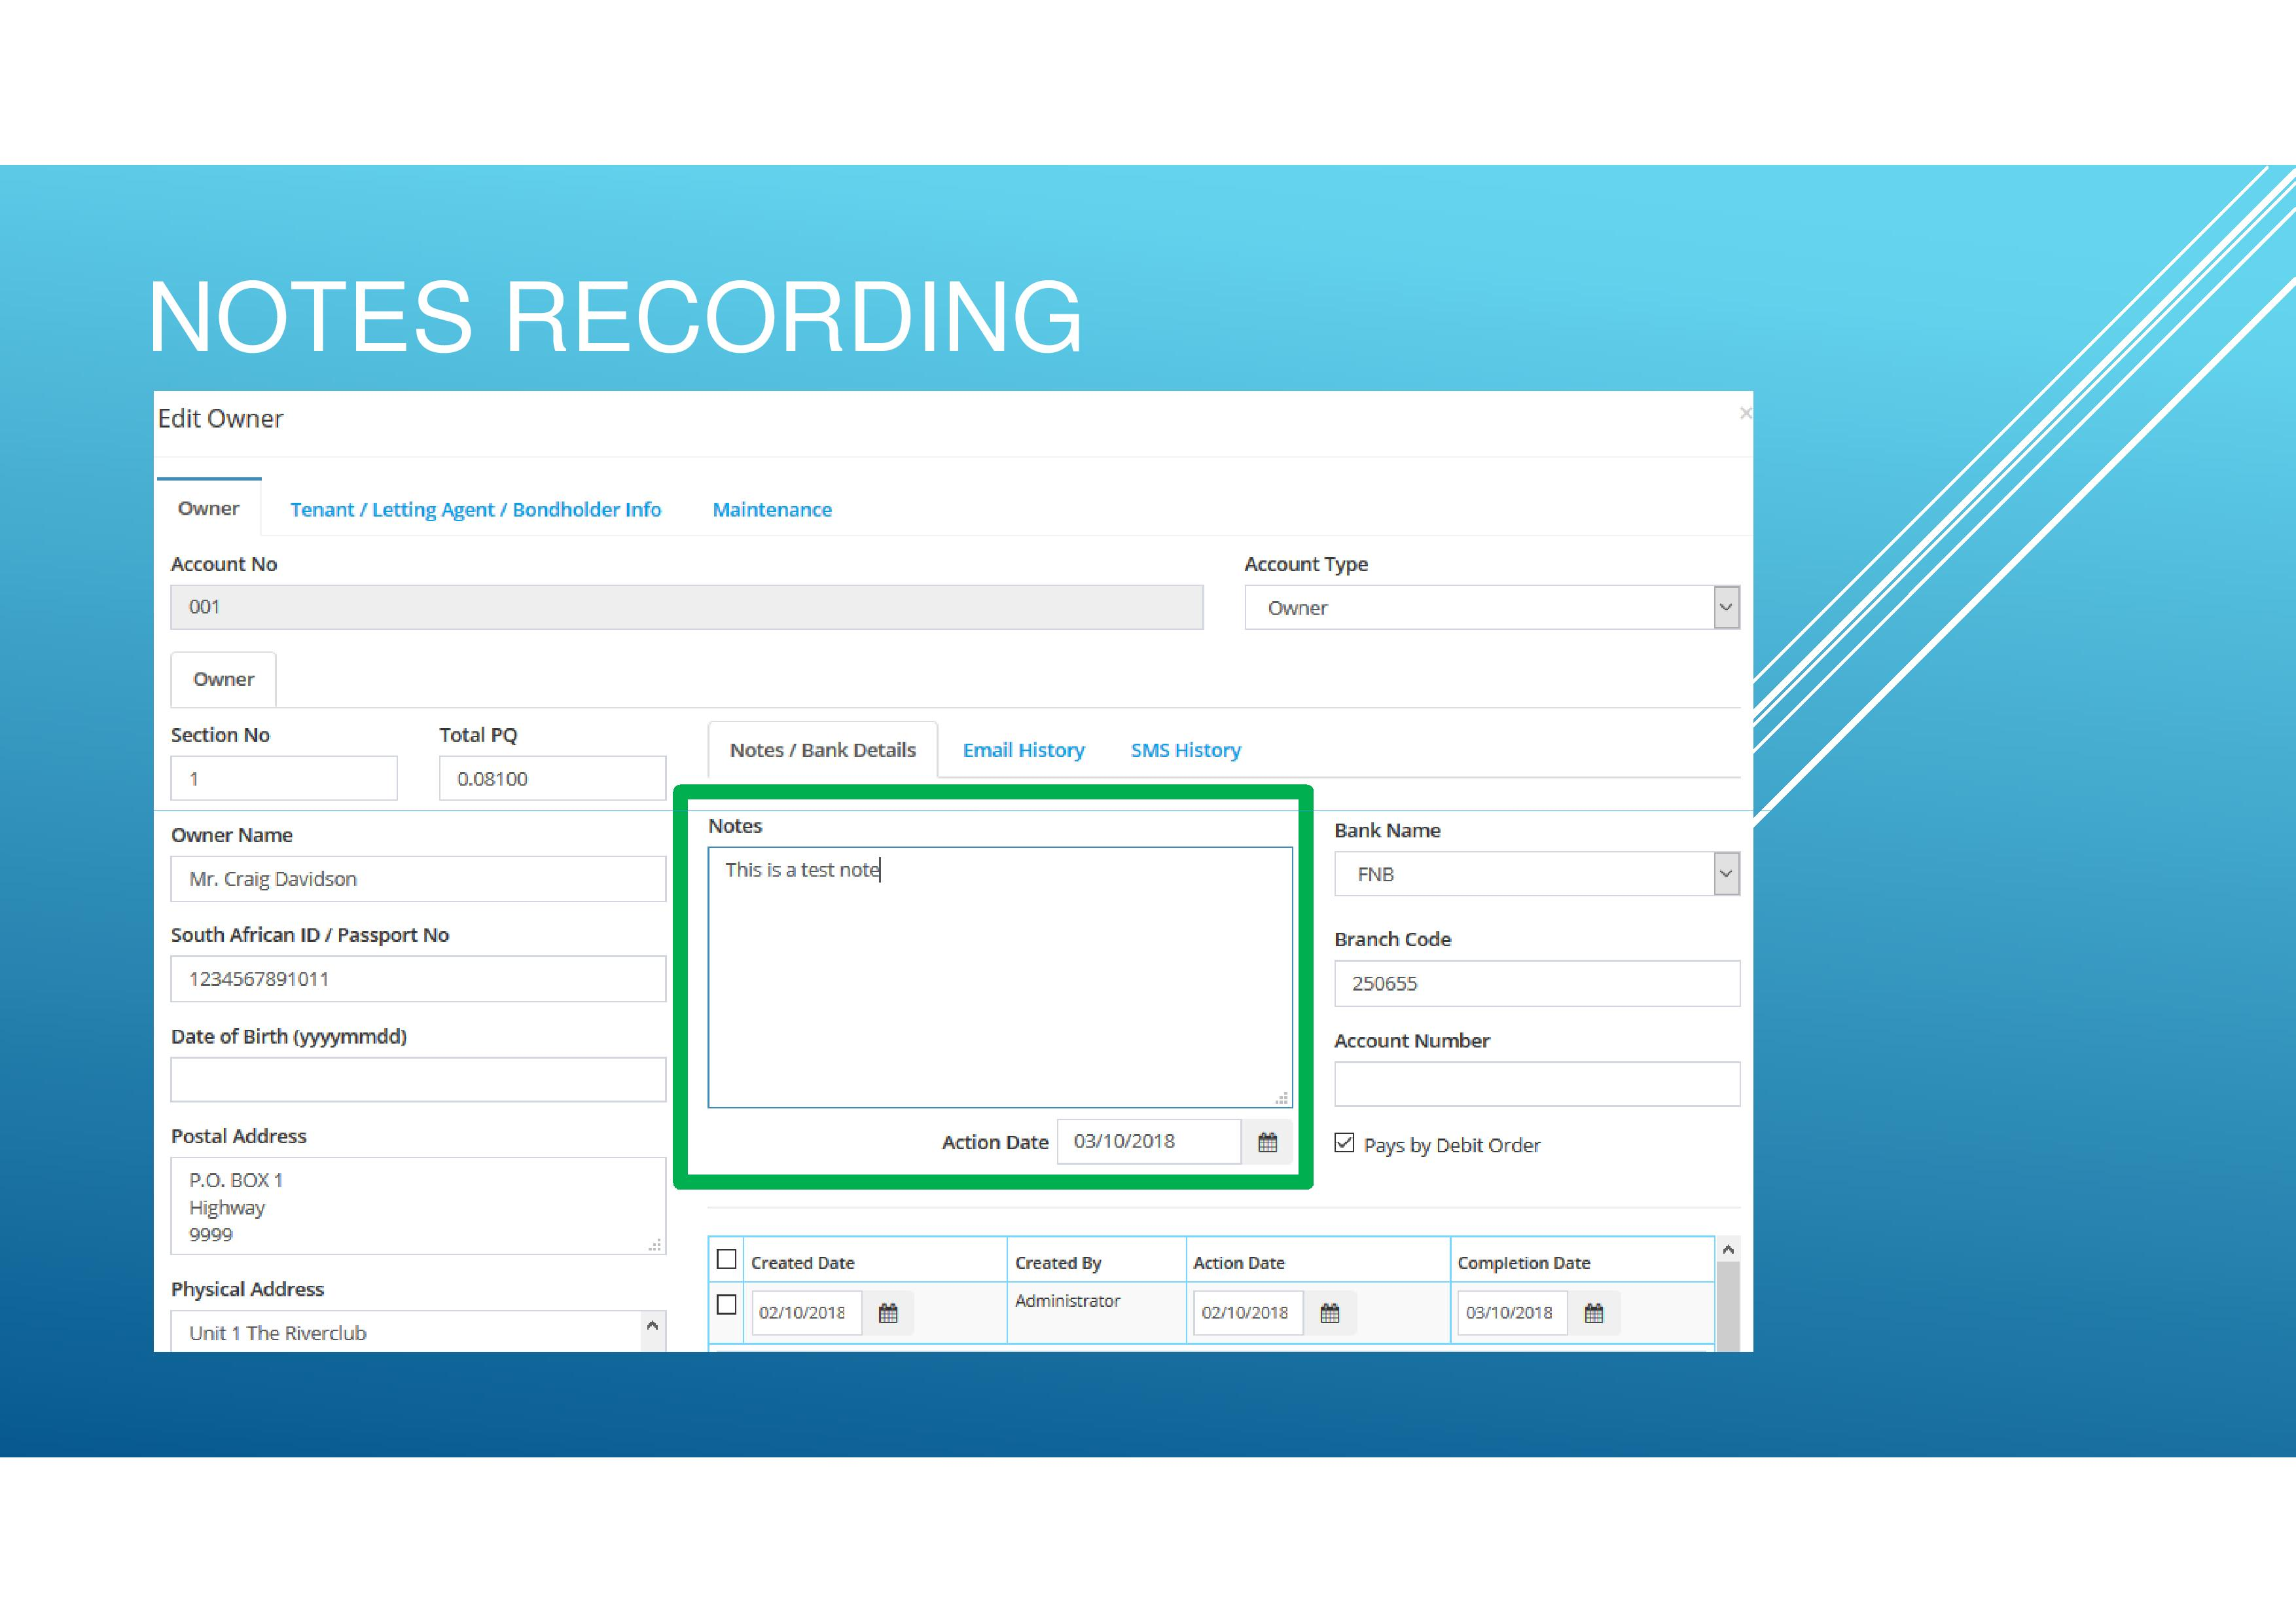 Record Notes on the Owners' profiles as well as the Debtor's Admin screen